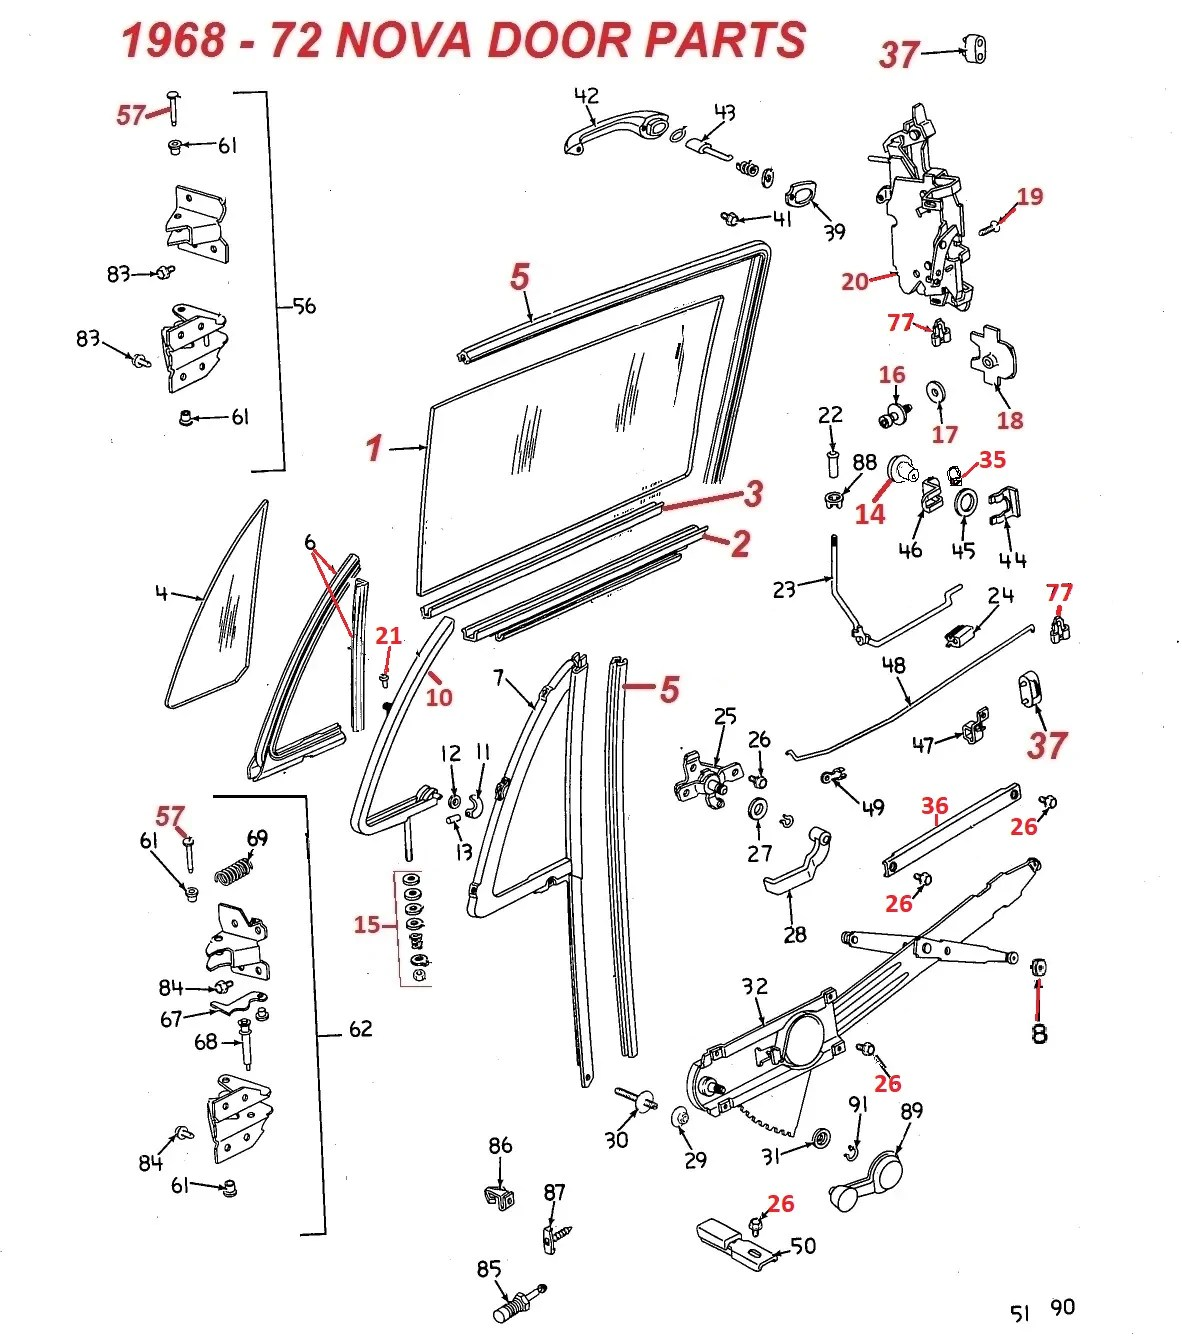 hight resolution of 1968 72 nova 71 72 ventura door parts chicago muscle car parts inc car frame schematic car door schematic